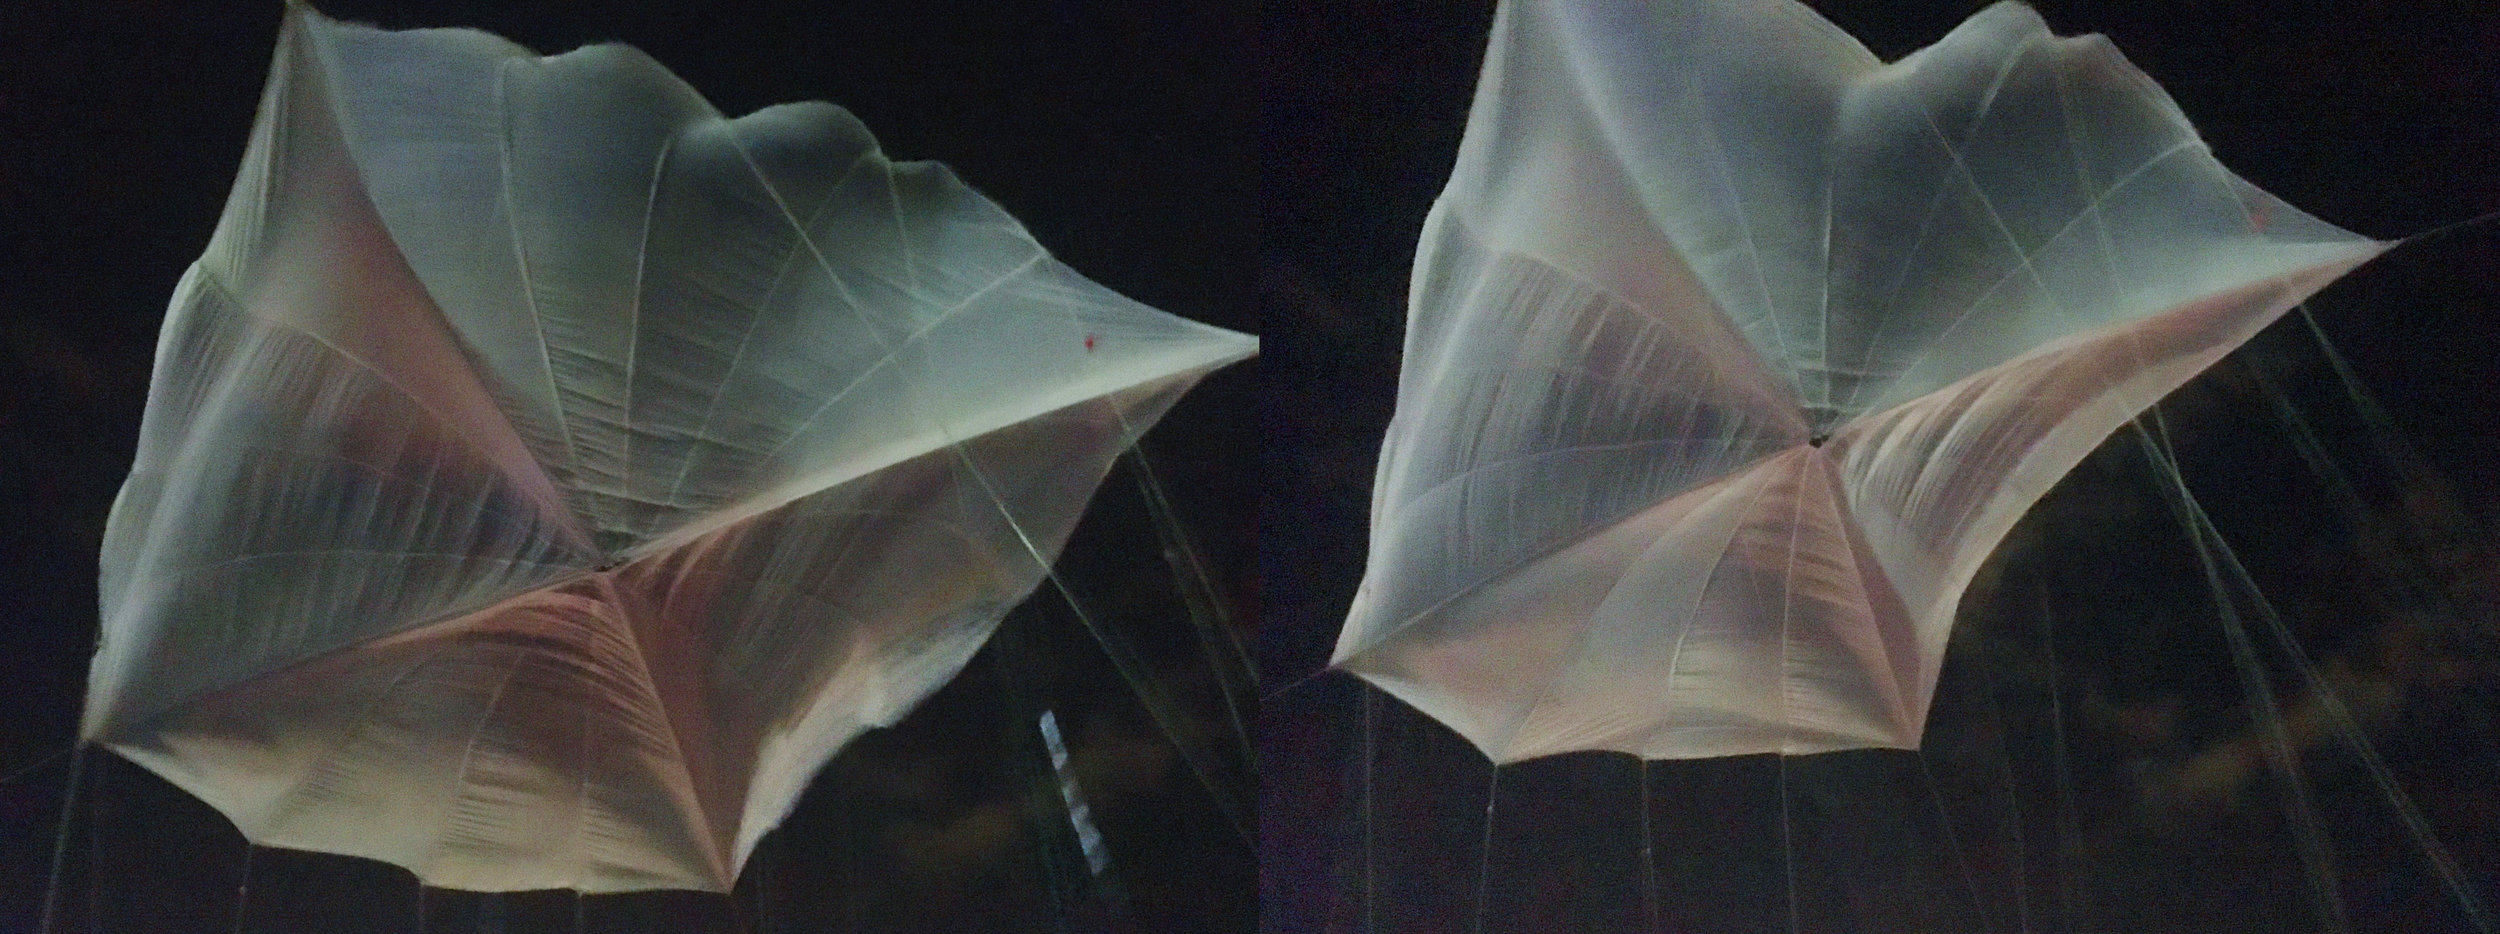 Suspence in Darkness - outdoor installation  Cargo Parachute, Rope, Roof, Sky, Wind, 25'x30'